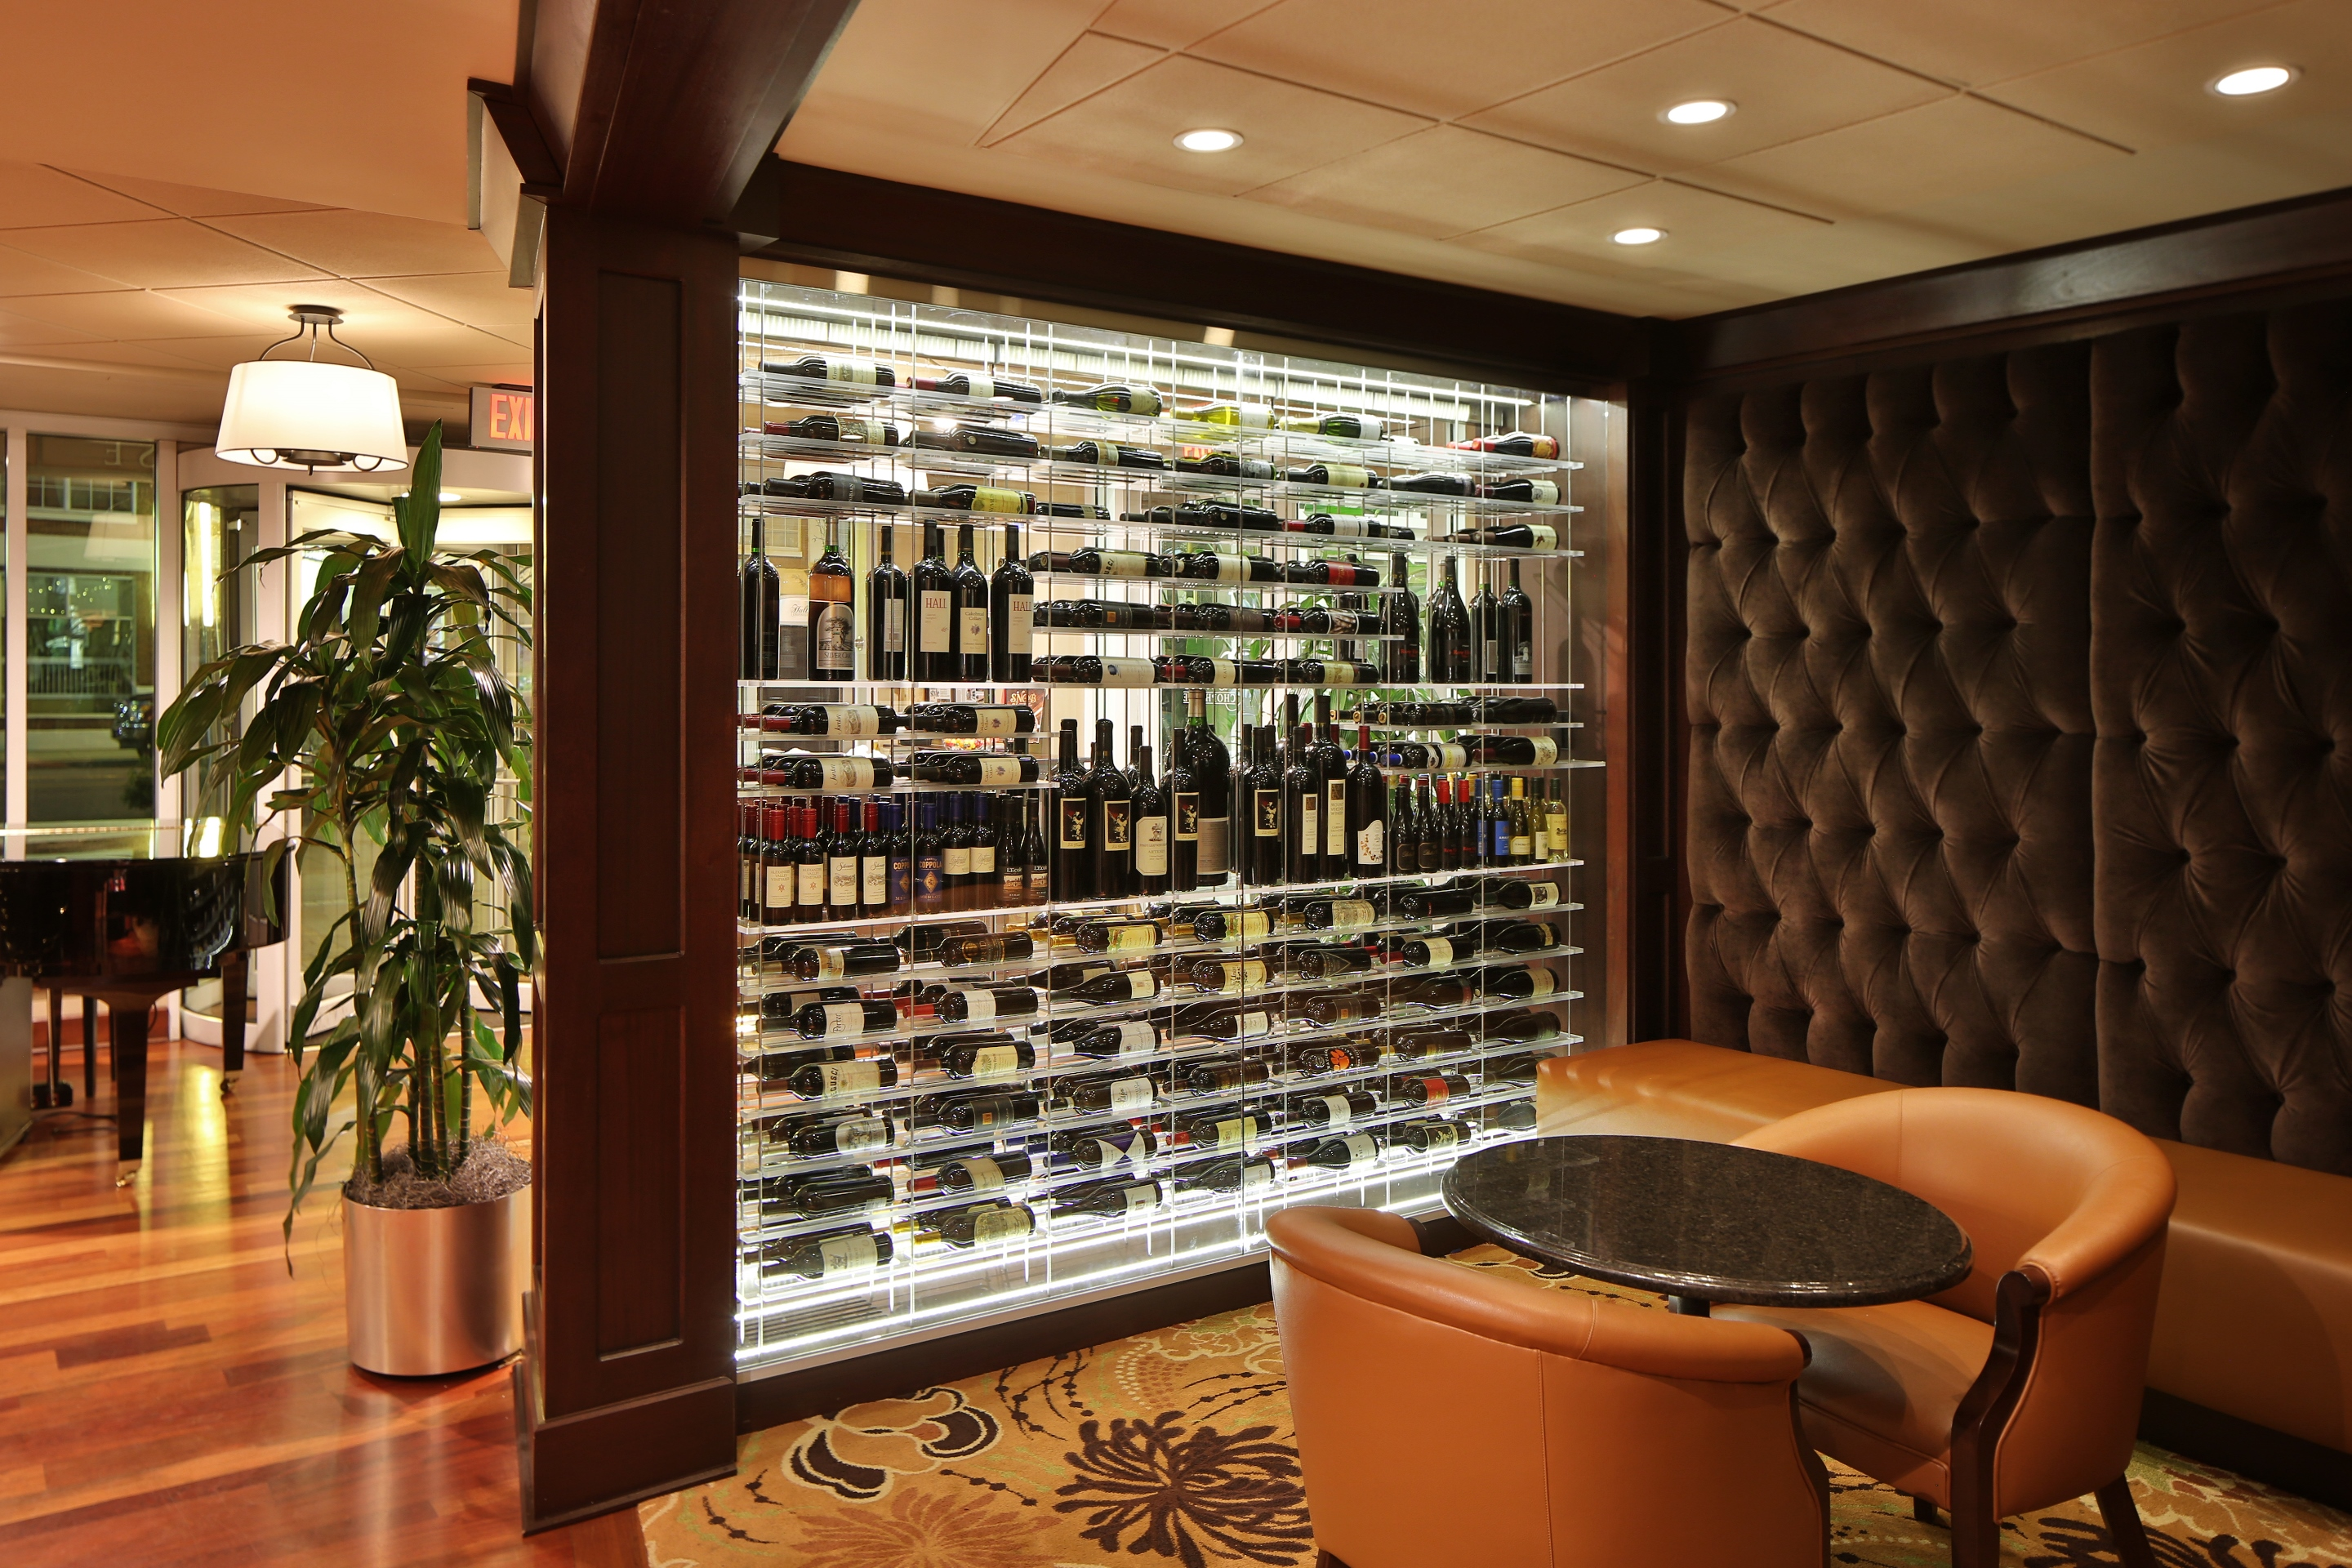 Kessick Completes Stunning Elevate Wine Display at Halls